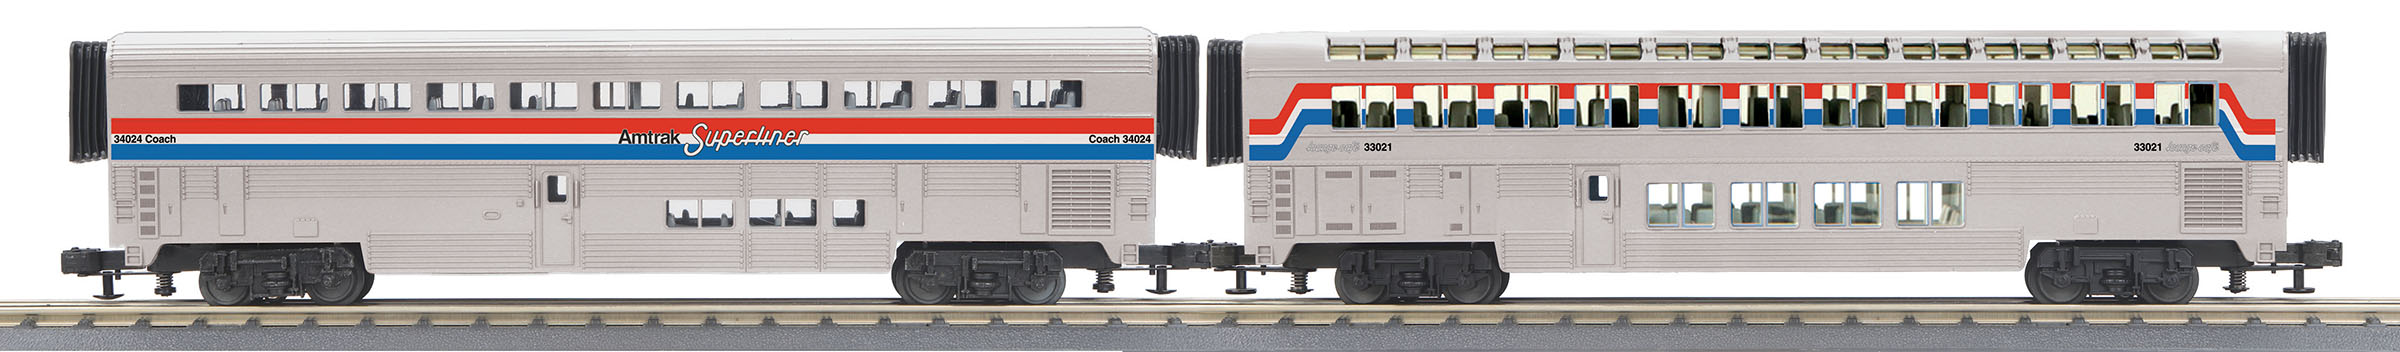 MTH 306536 O-31 SuperLiner Set Amtrak/Phase III #4019 2